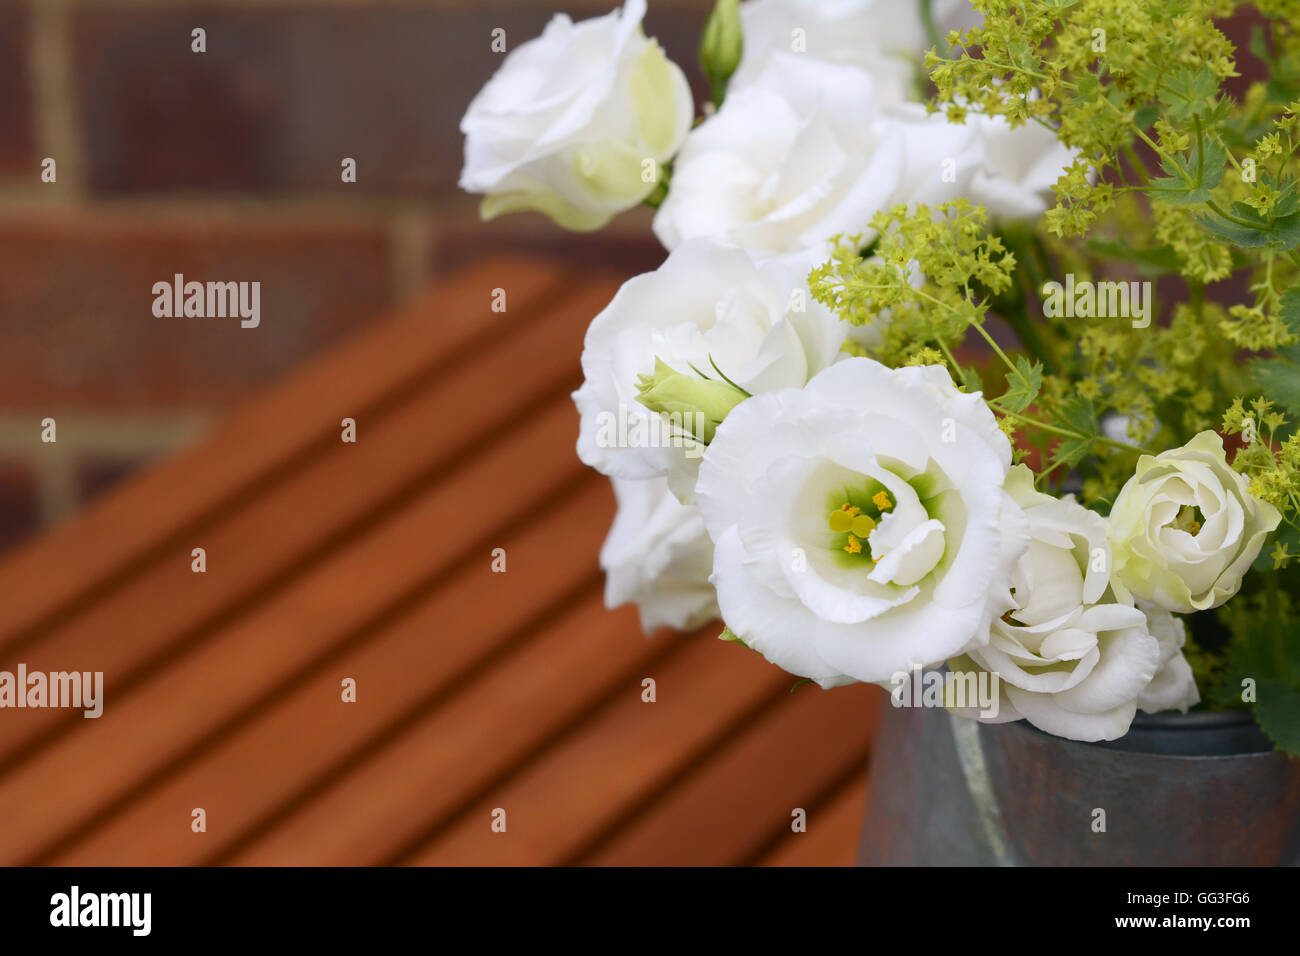 Close-up of white tulip gentian blooms with ladys mantle on a wooden slatted table - Stock Image